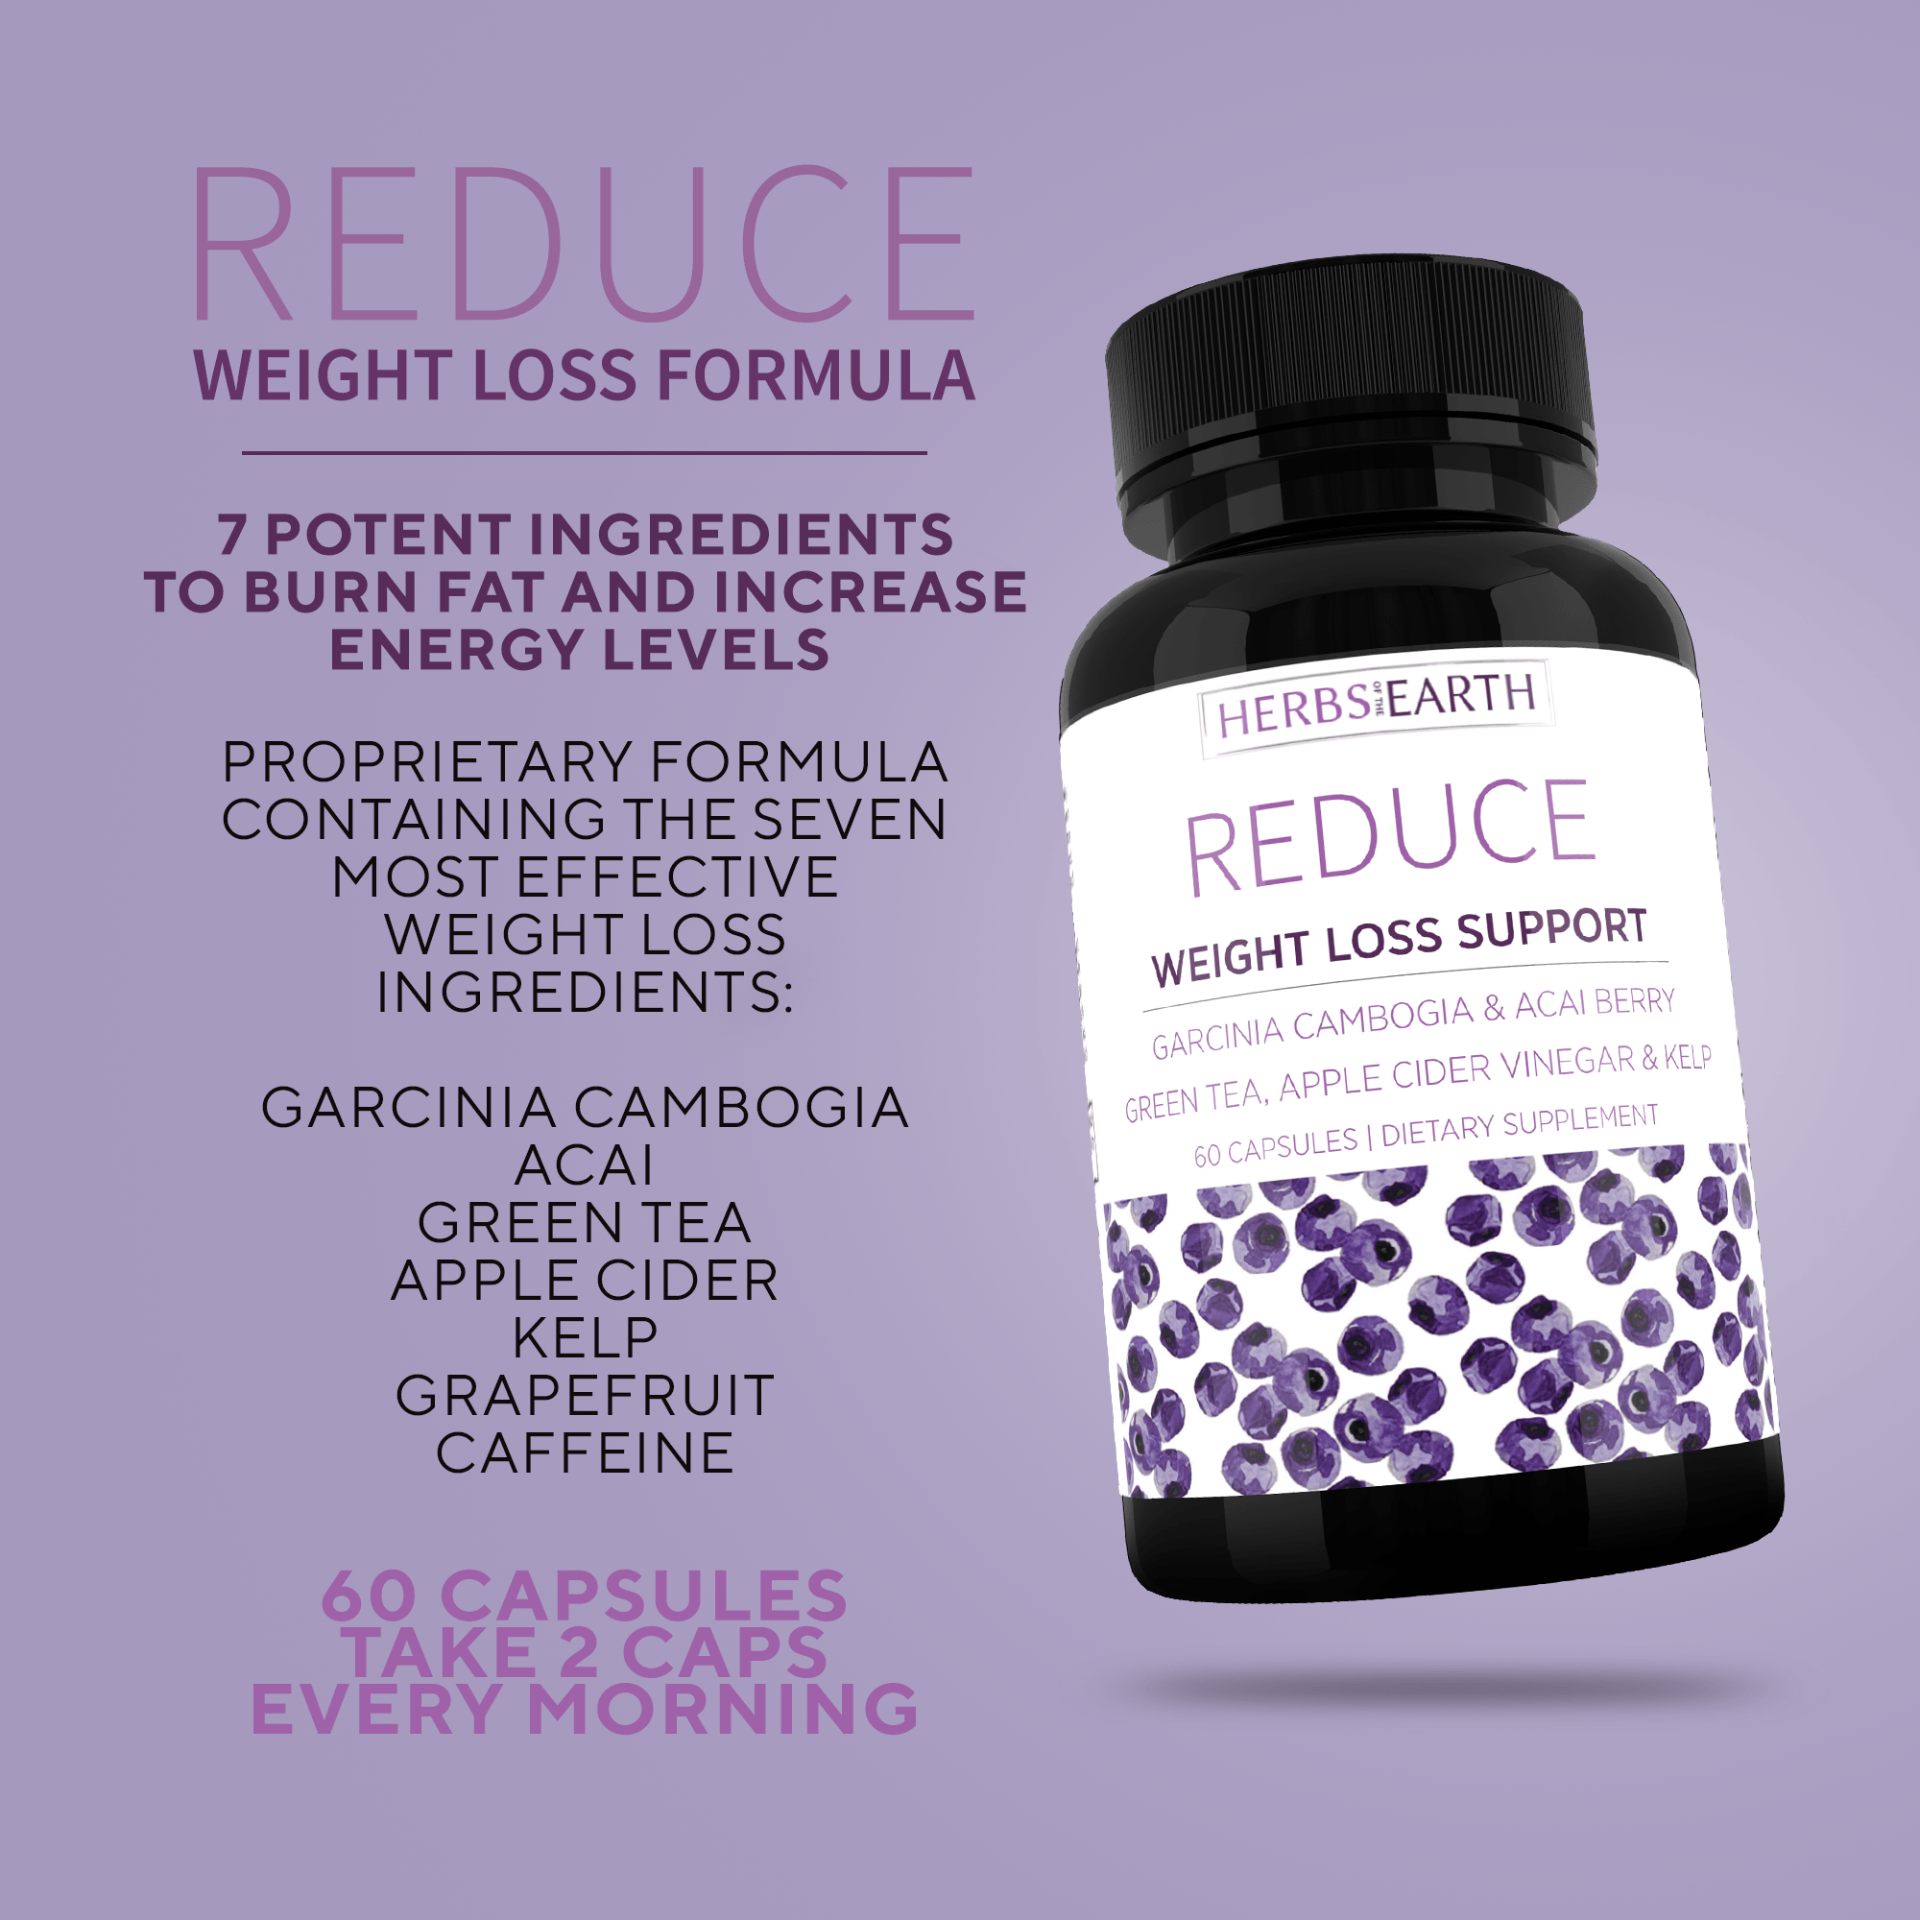 Reduce Advanced Weight Loss 7 Potent Weight Loss Ingredients